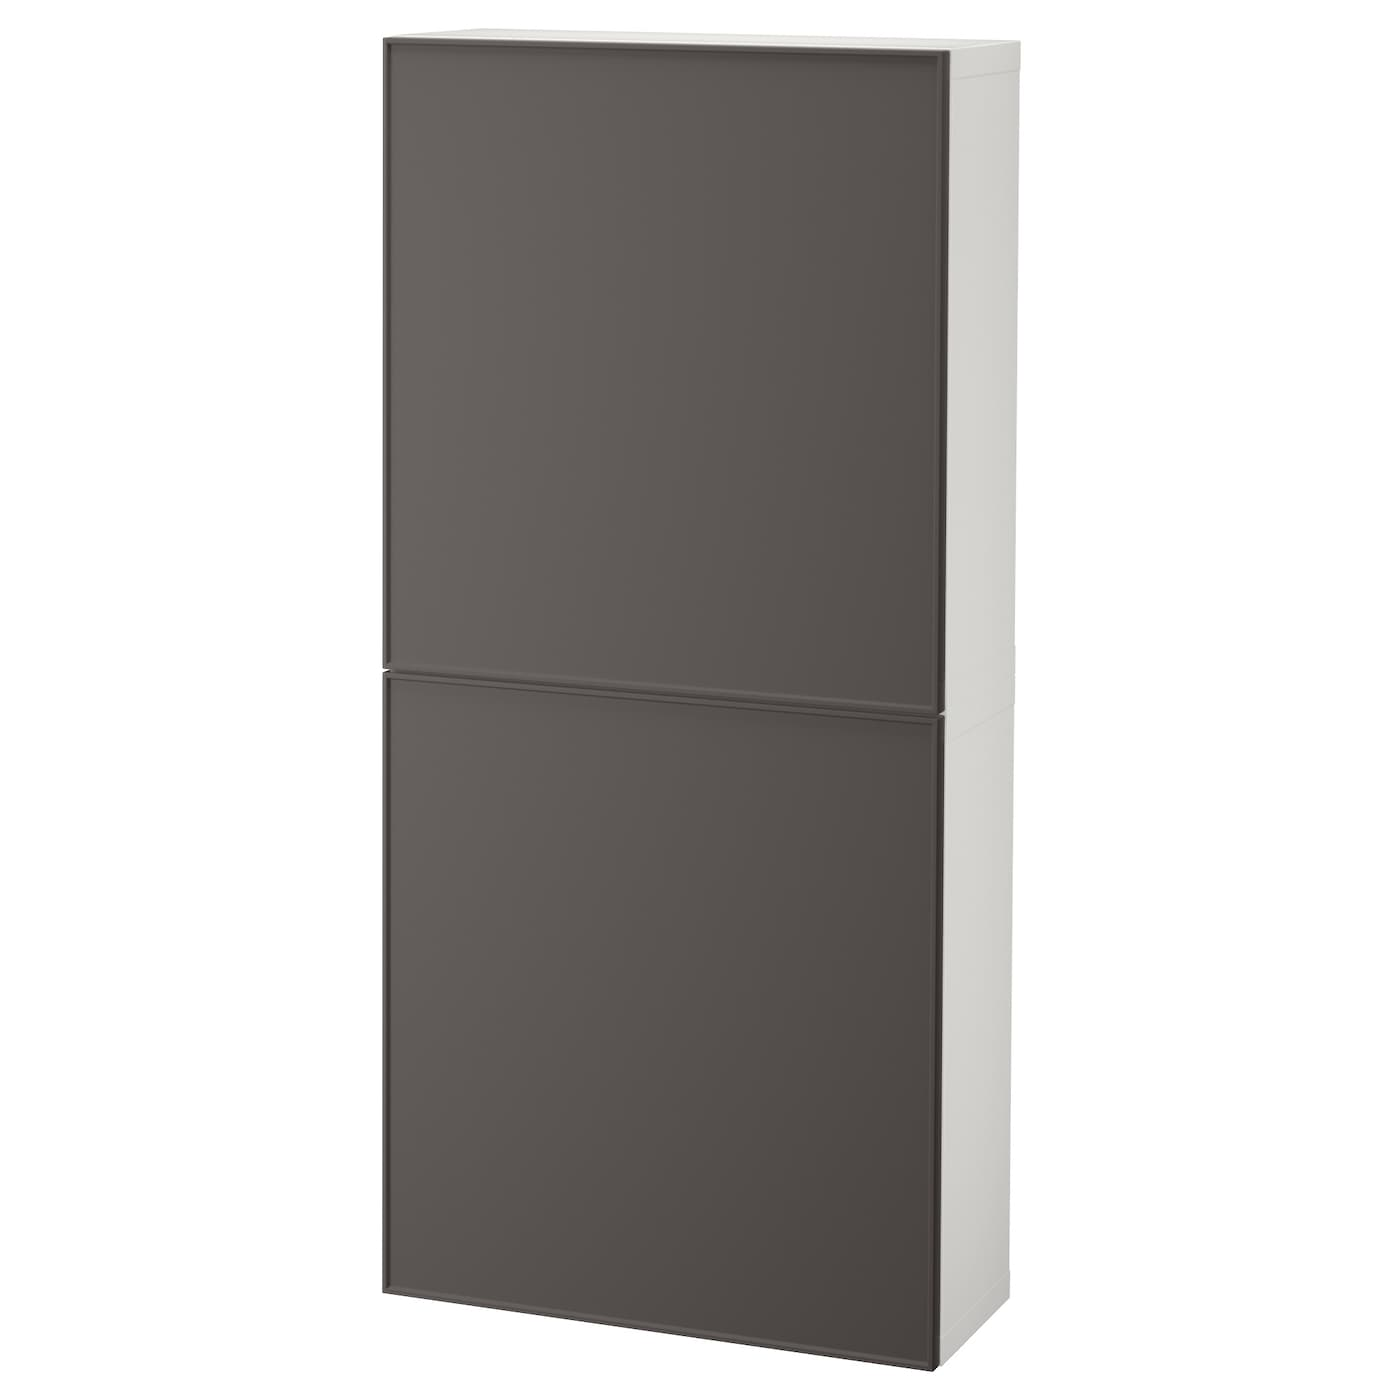 IKEA BESTÅ wall cabinet with 2 doors